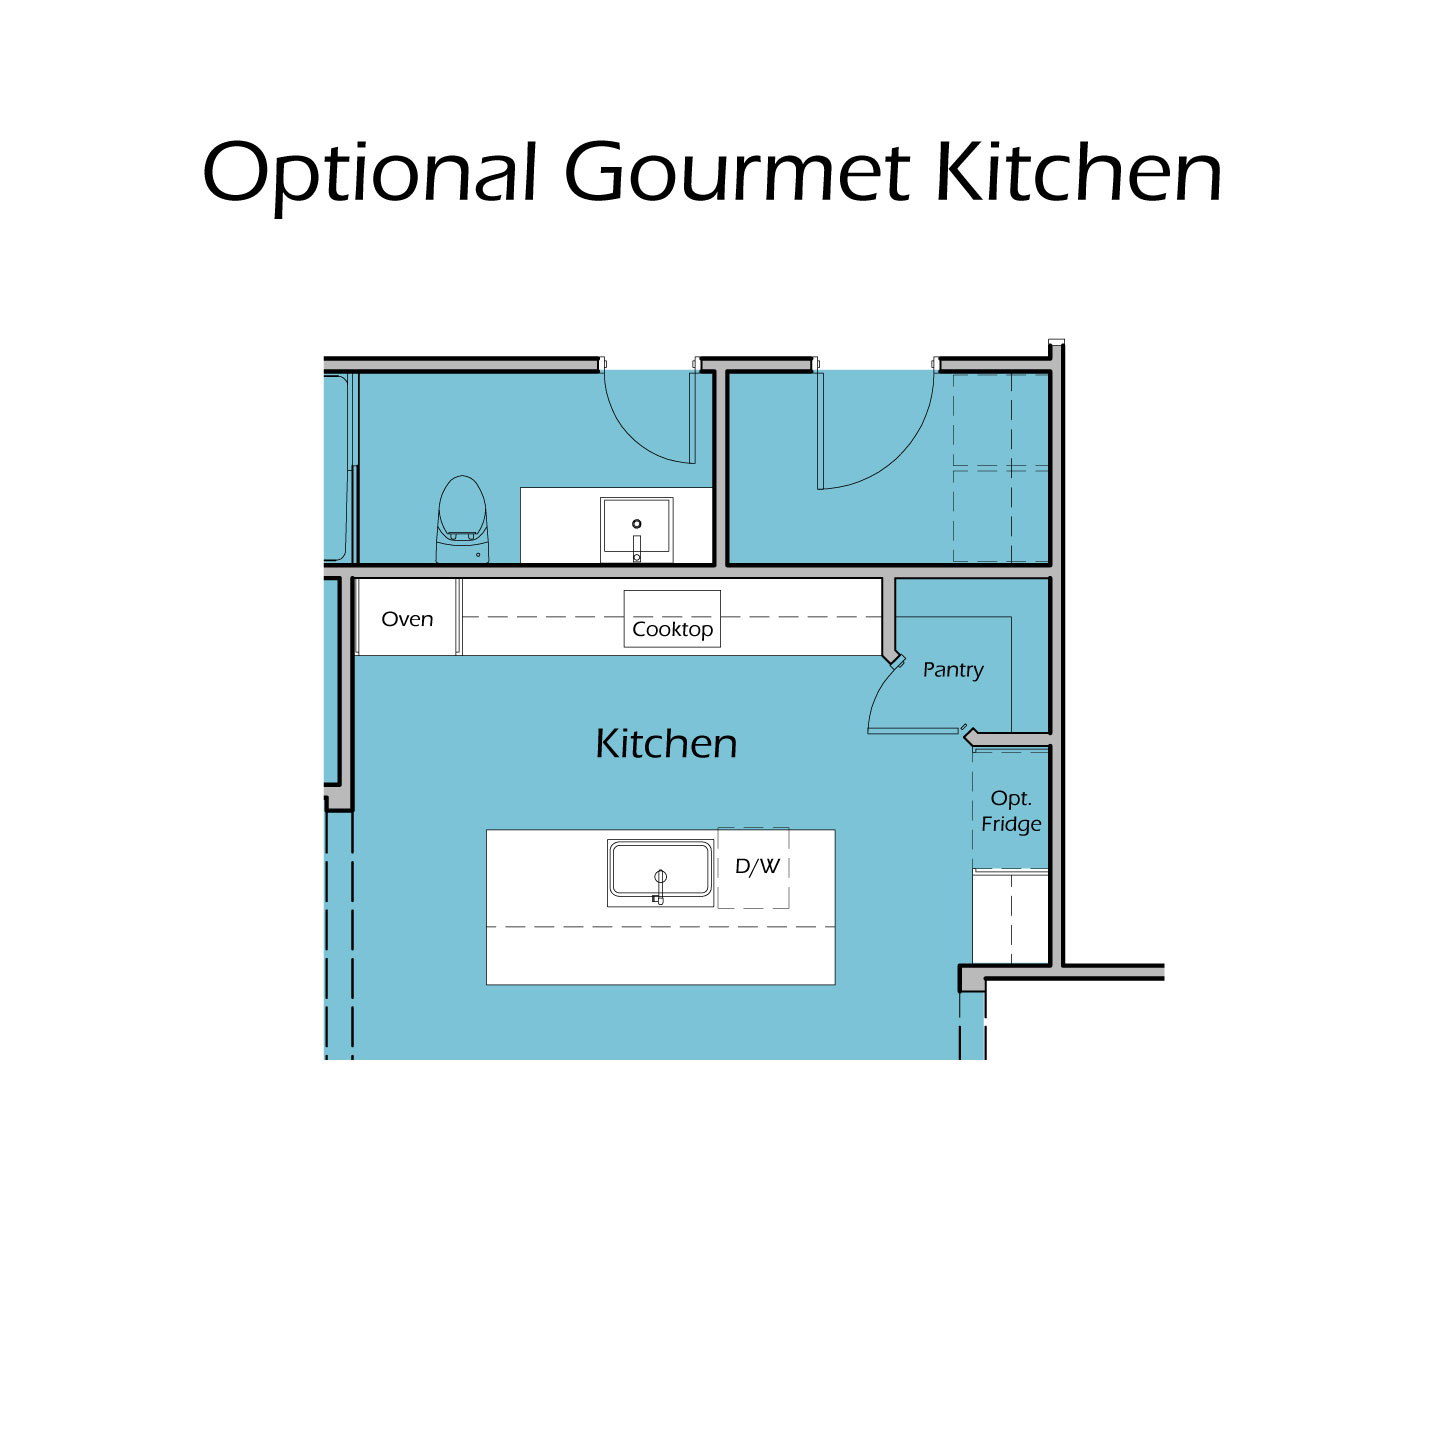 Heartland Plan TC2 Gourmet Kitchen Option